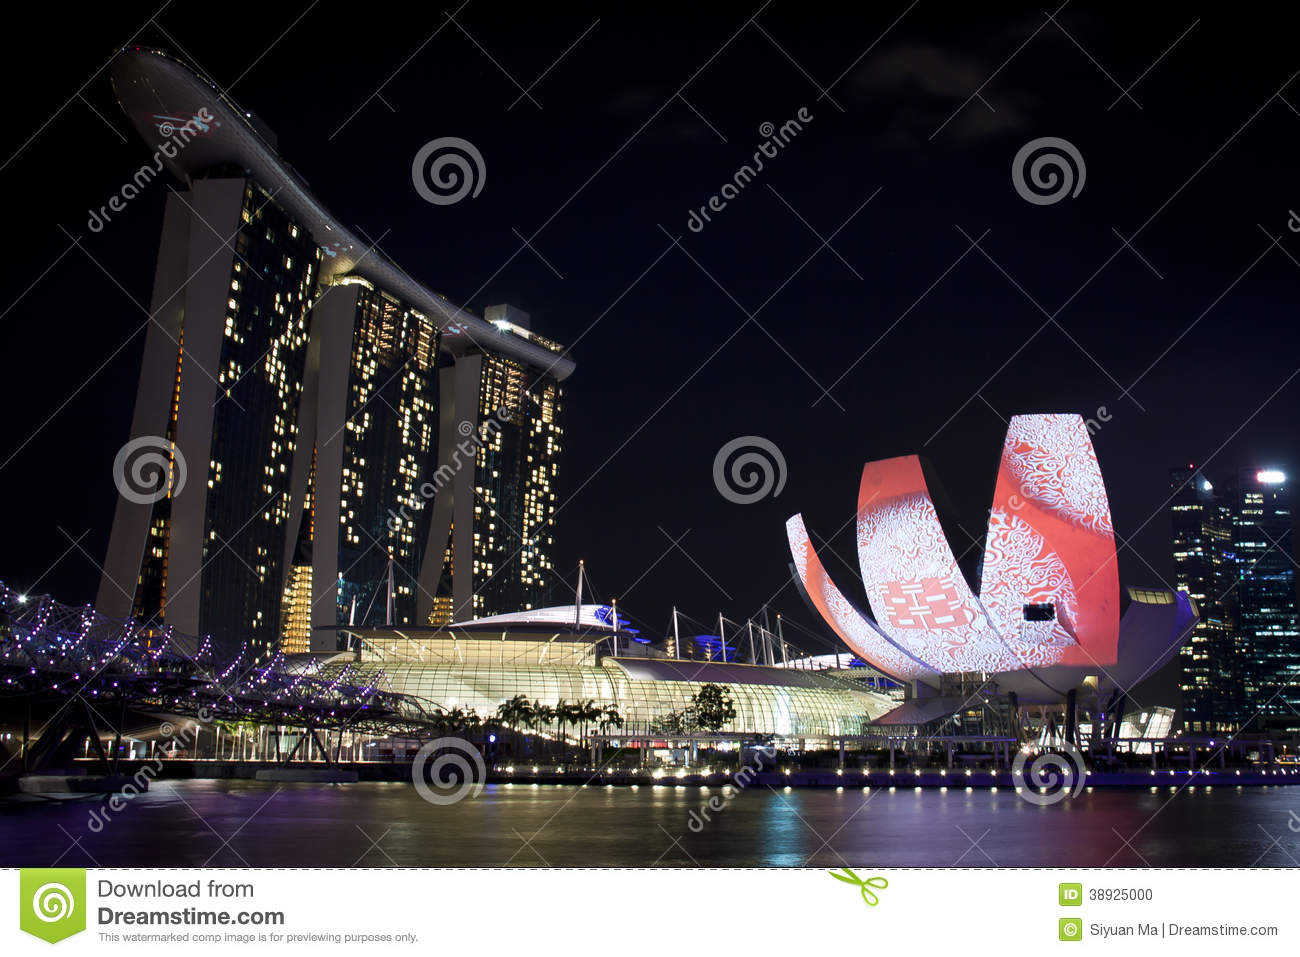 Marina Bay Sands e Art Science Museum